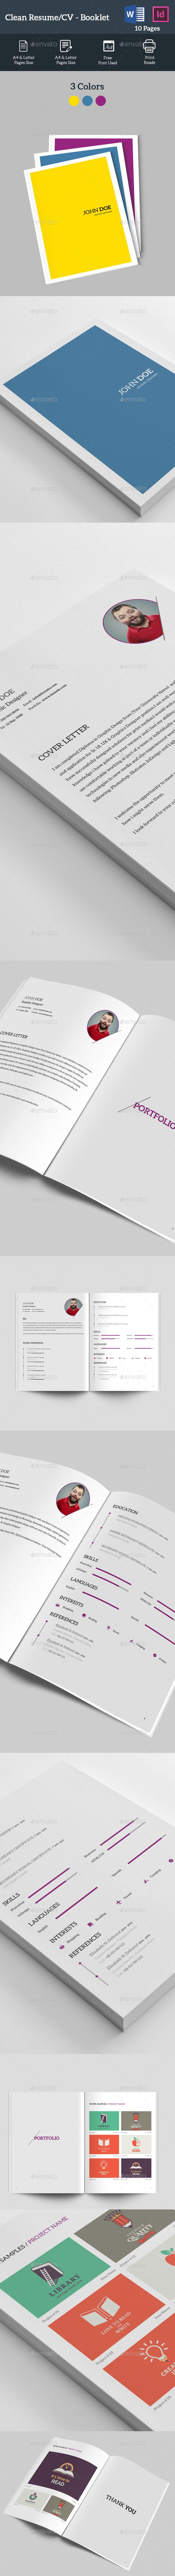 Clean Resume   CV InDesign Booklet Template U2022 Only Available Here ➝  Http://graphicriver.net/item/clean Resume Cv Booklet/16697050?refu003dpxcr